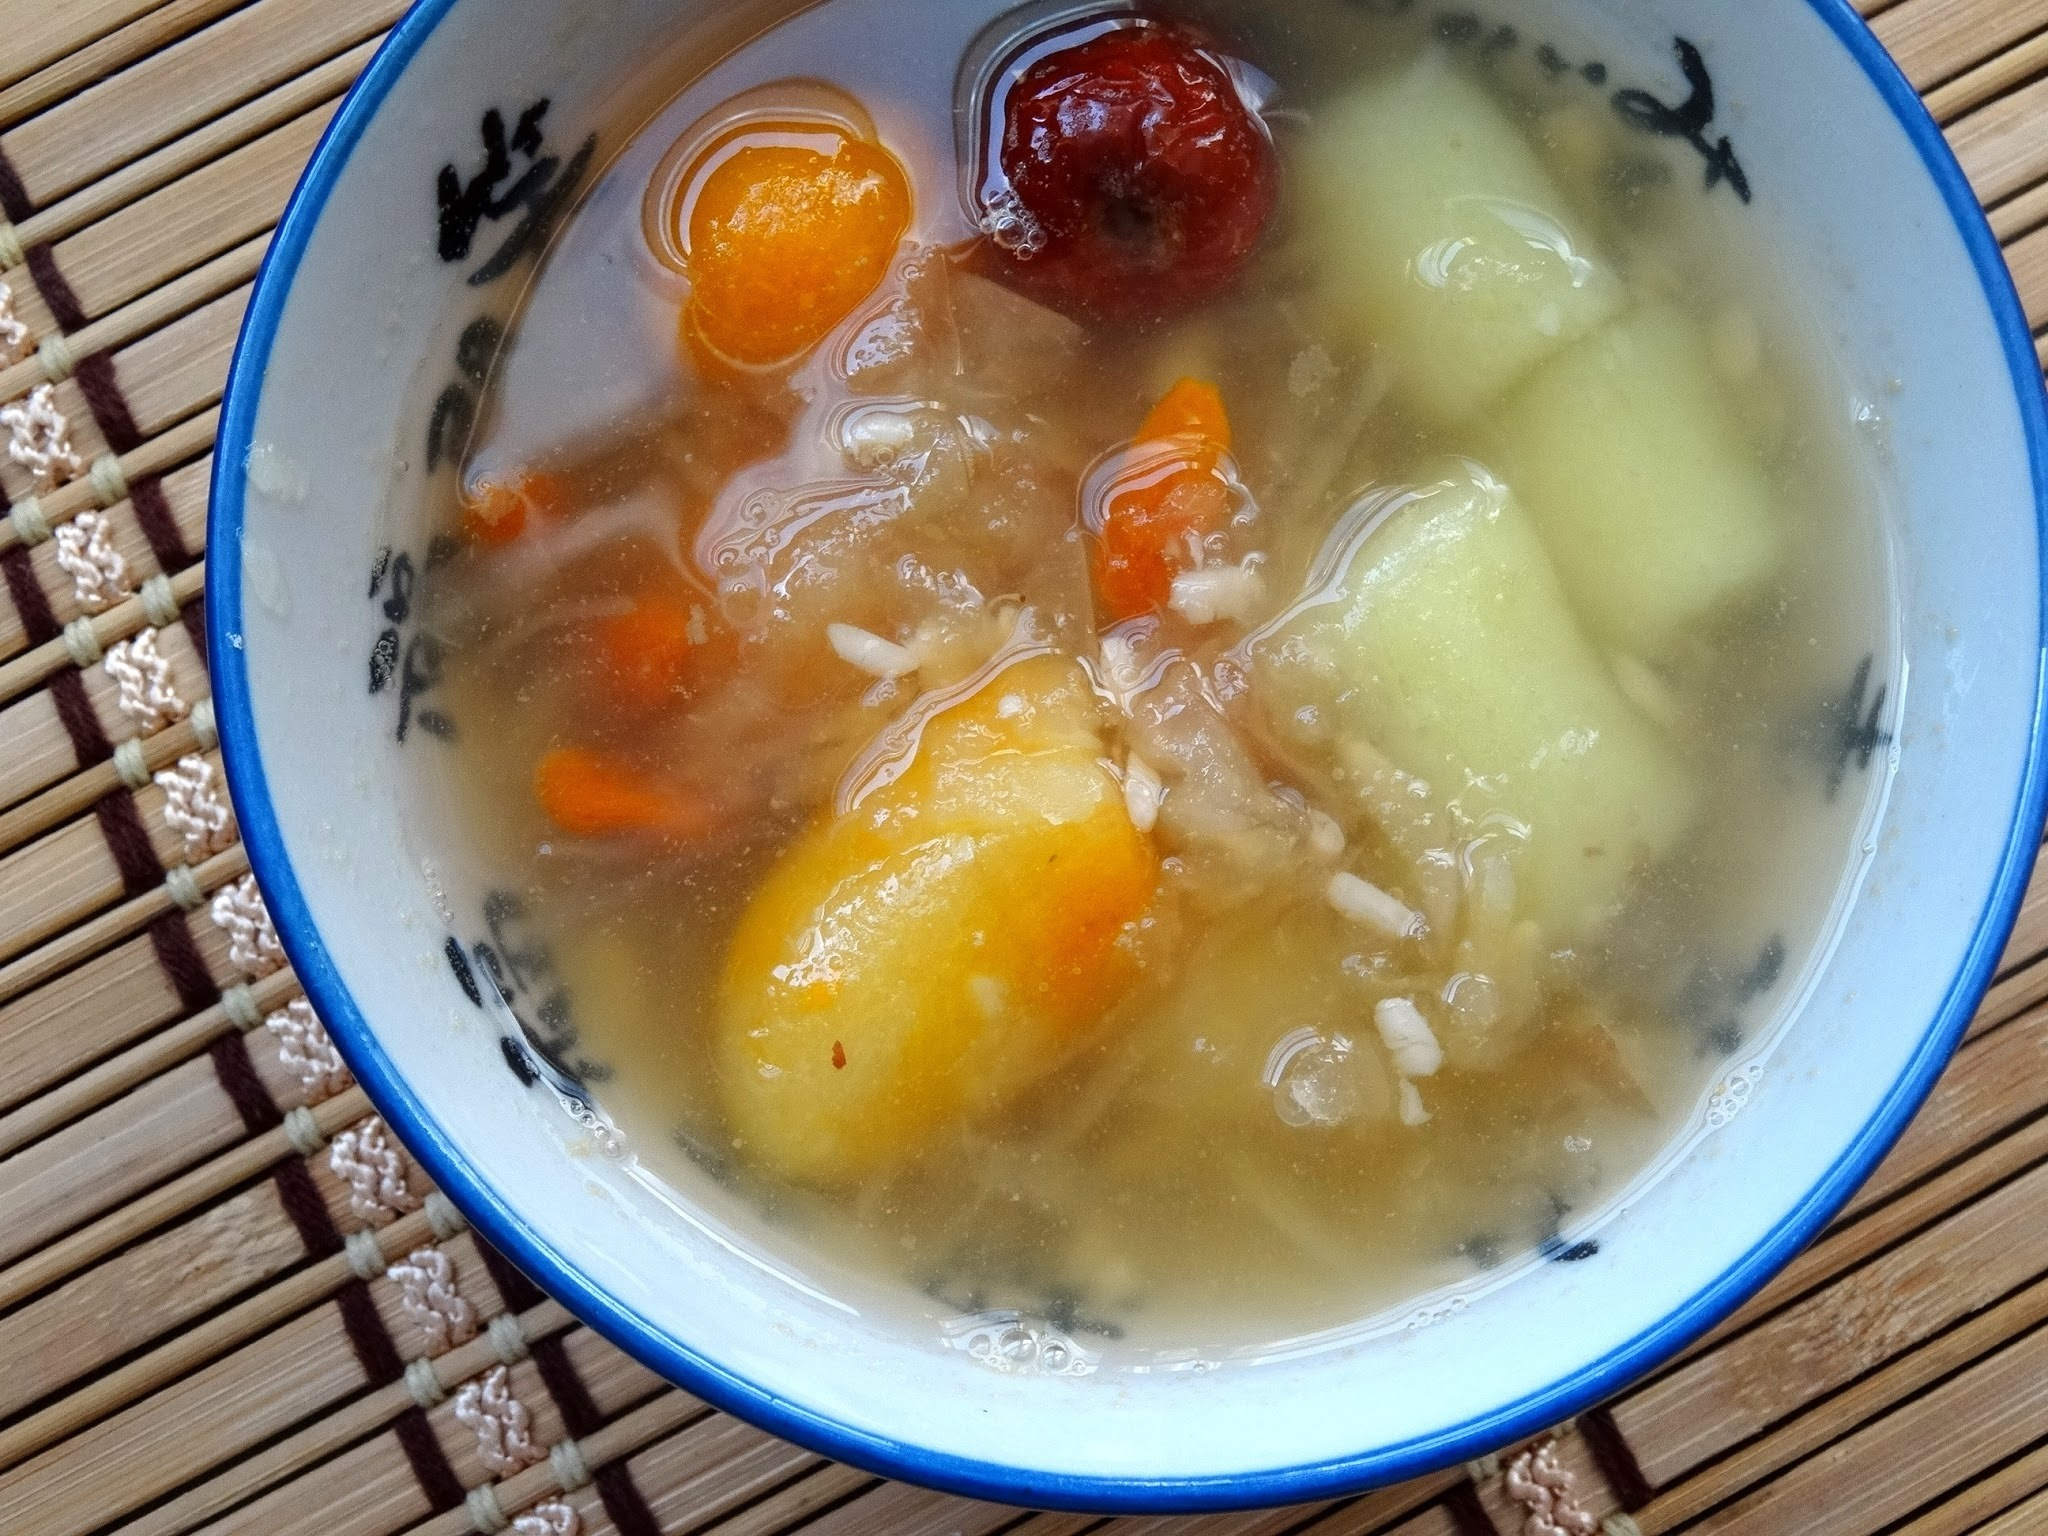 蜜棗酒釀蘋果地瓜圓 Sweet Potato Tapioca Balls in Apple Sweet Soup